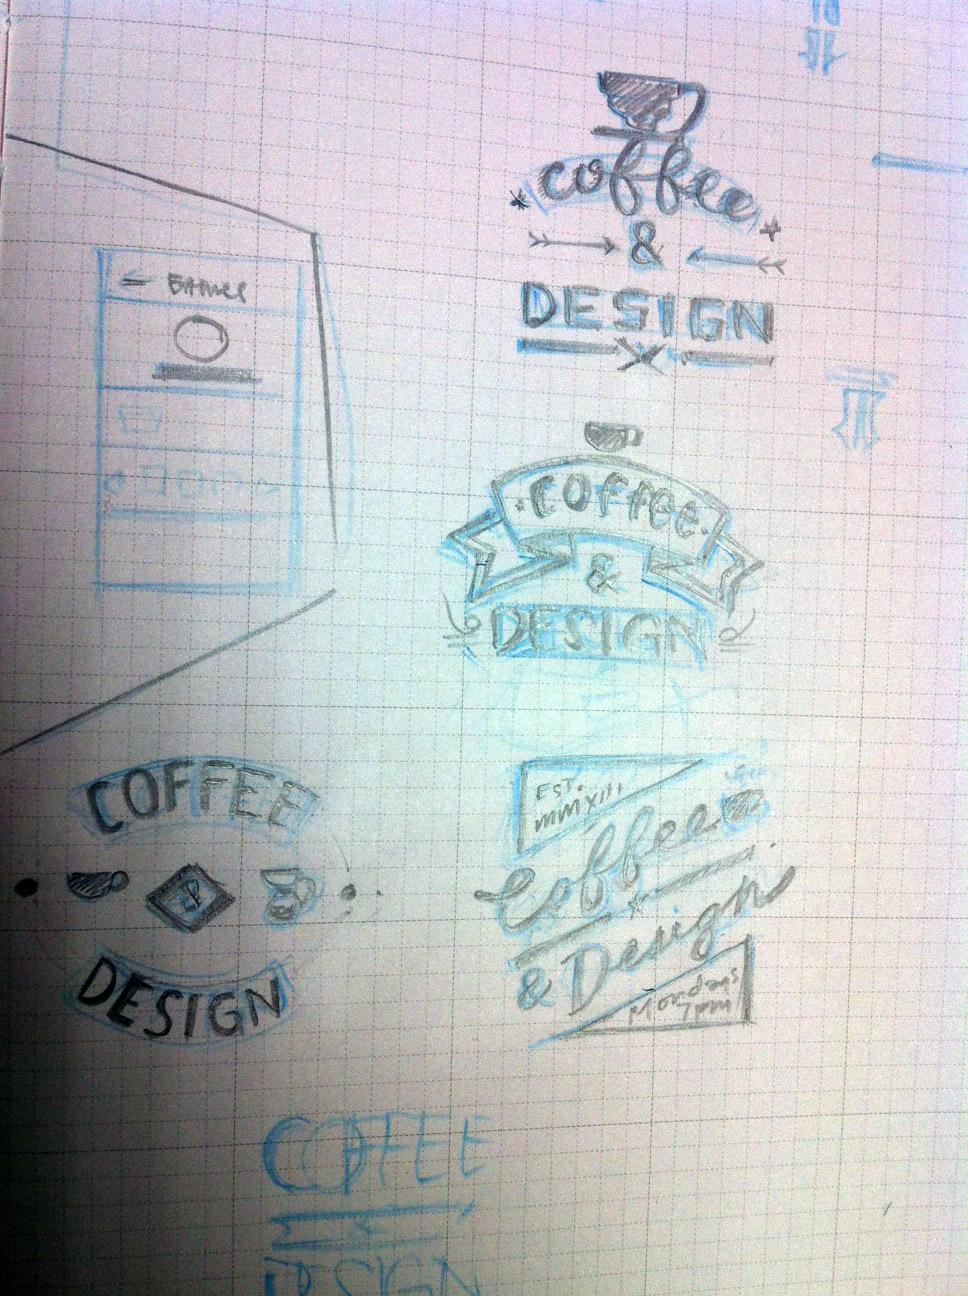 Coffee & Design - image 4 - student project